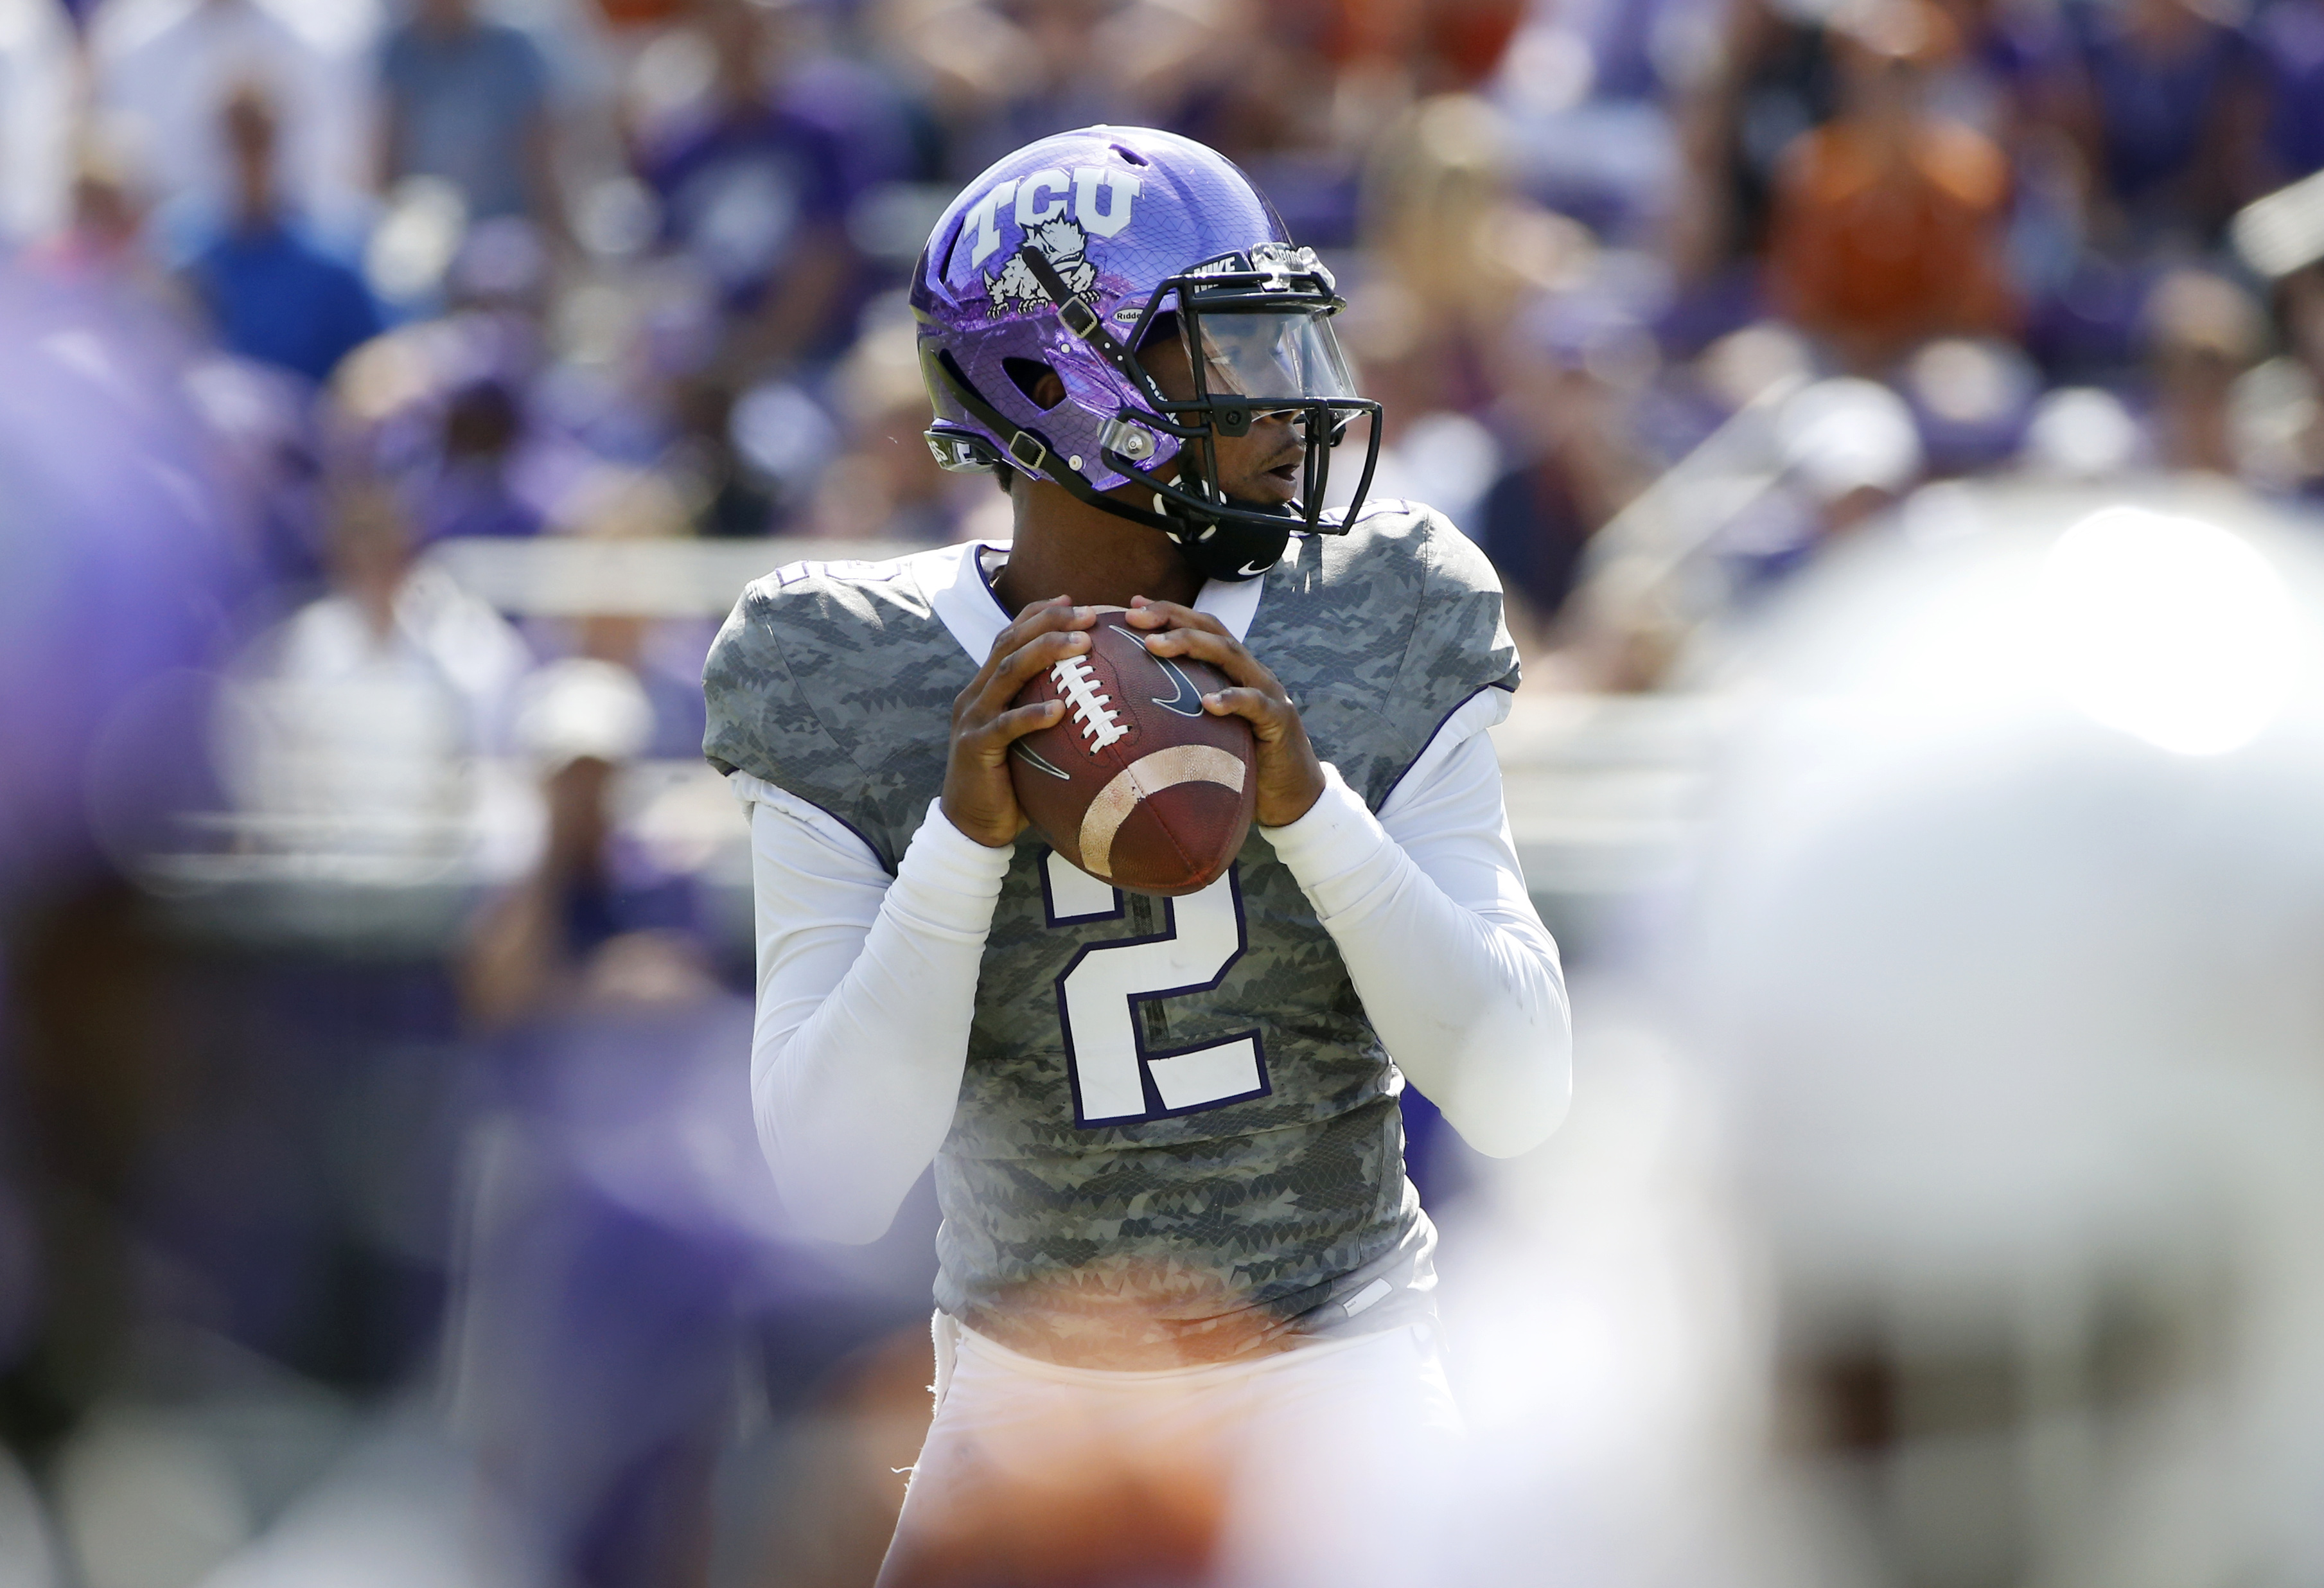 TCU quarterback Trevone Boykin (2) looks to throw against Texas in a NCAA college football game Saturday, Oct. 3, 2015, in Fort Worth, Texas. (AP Photo/Ron Jenkins)